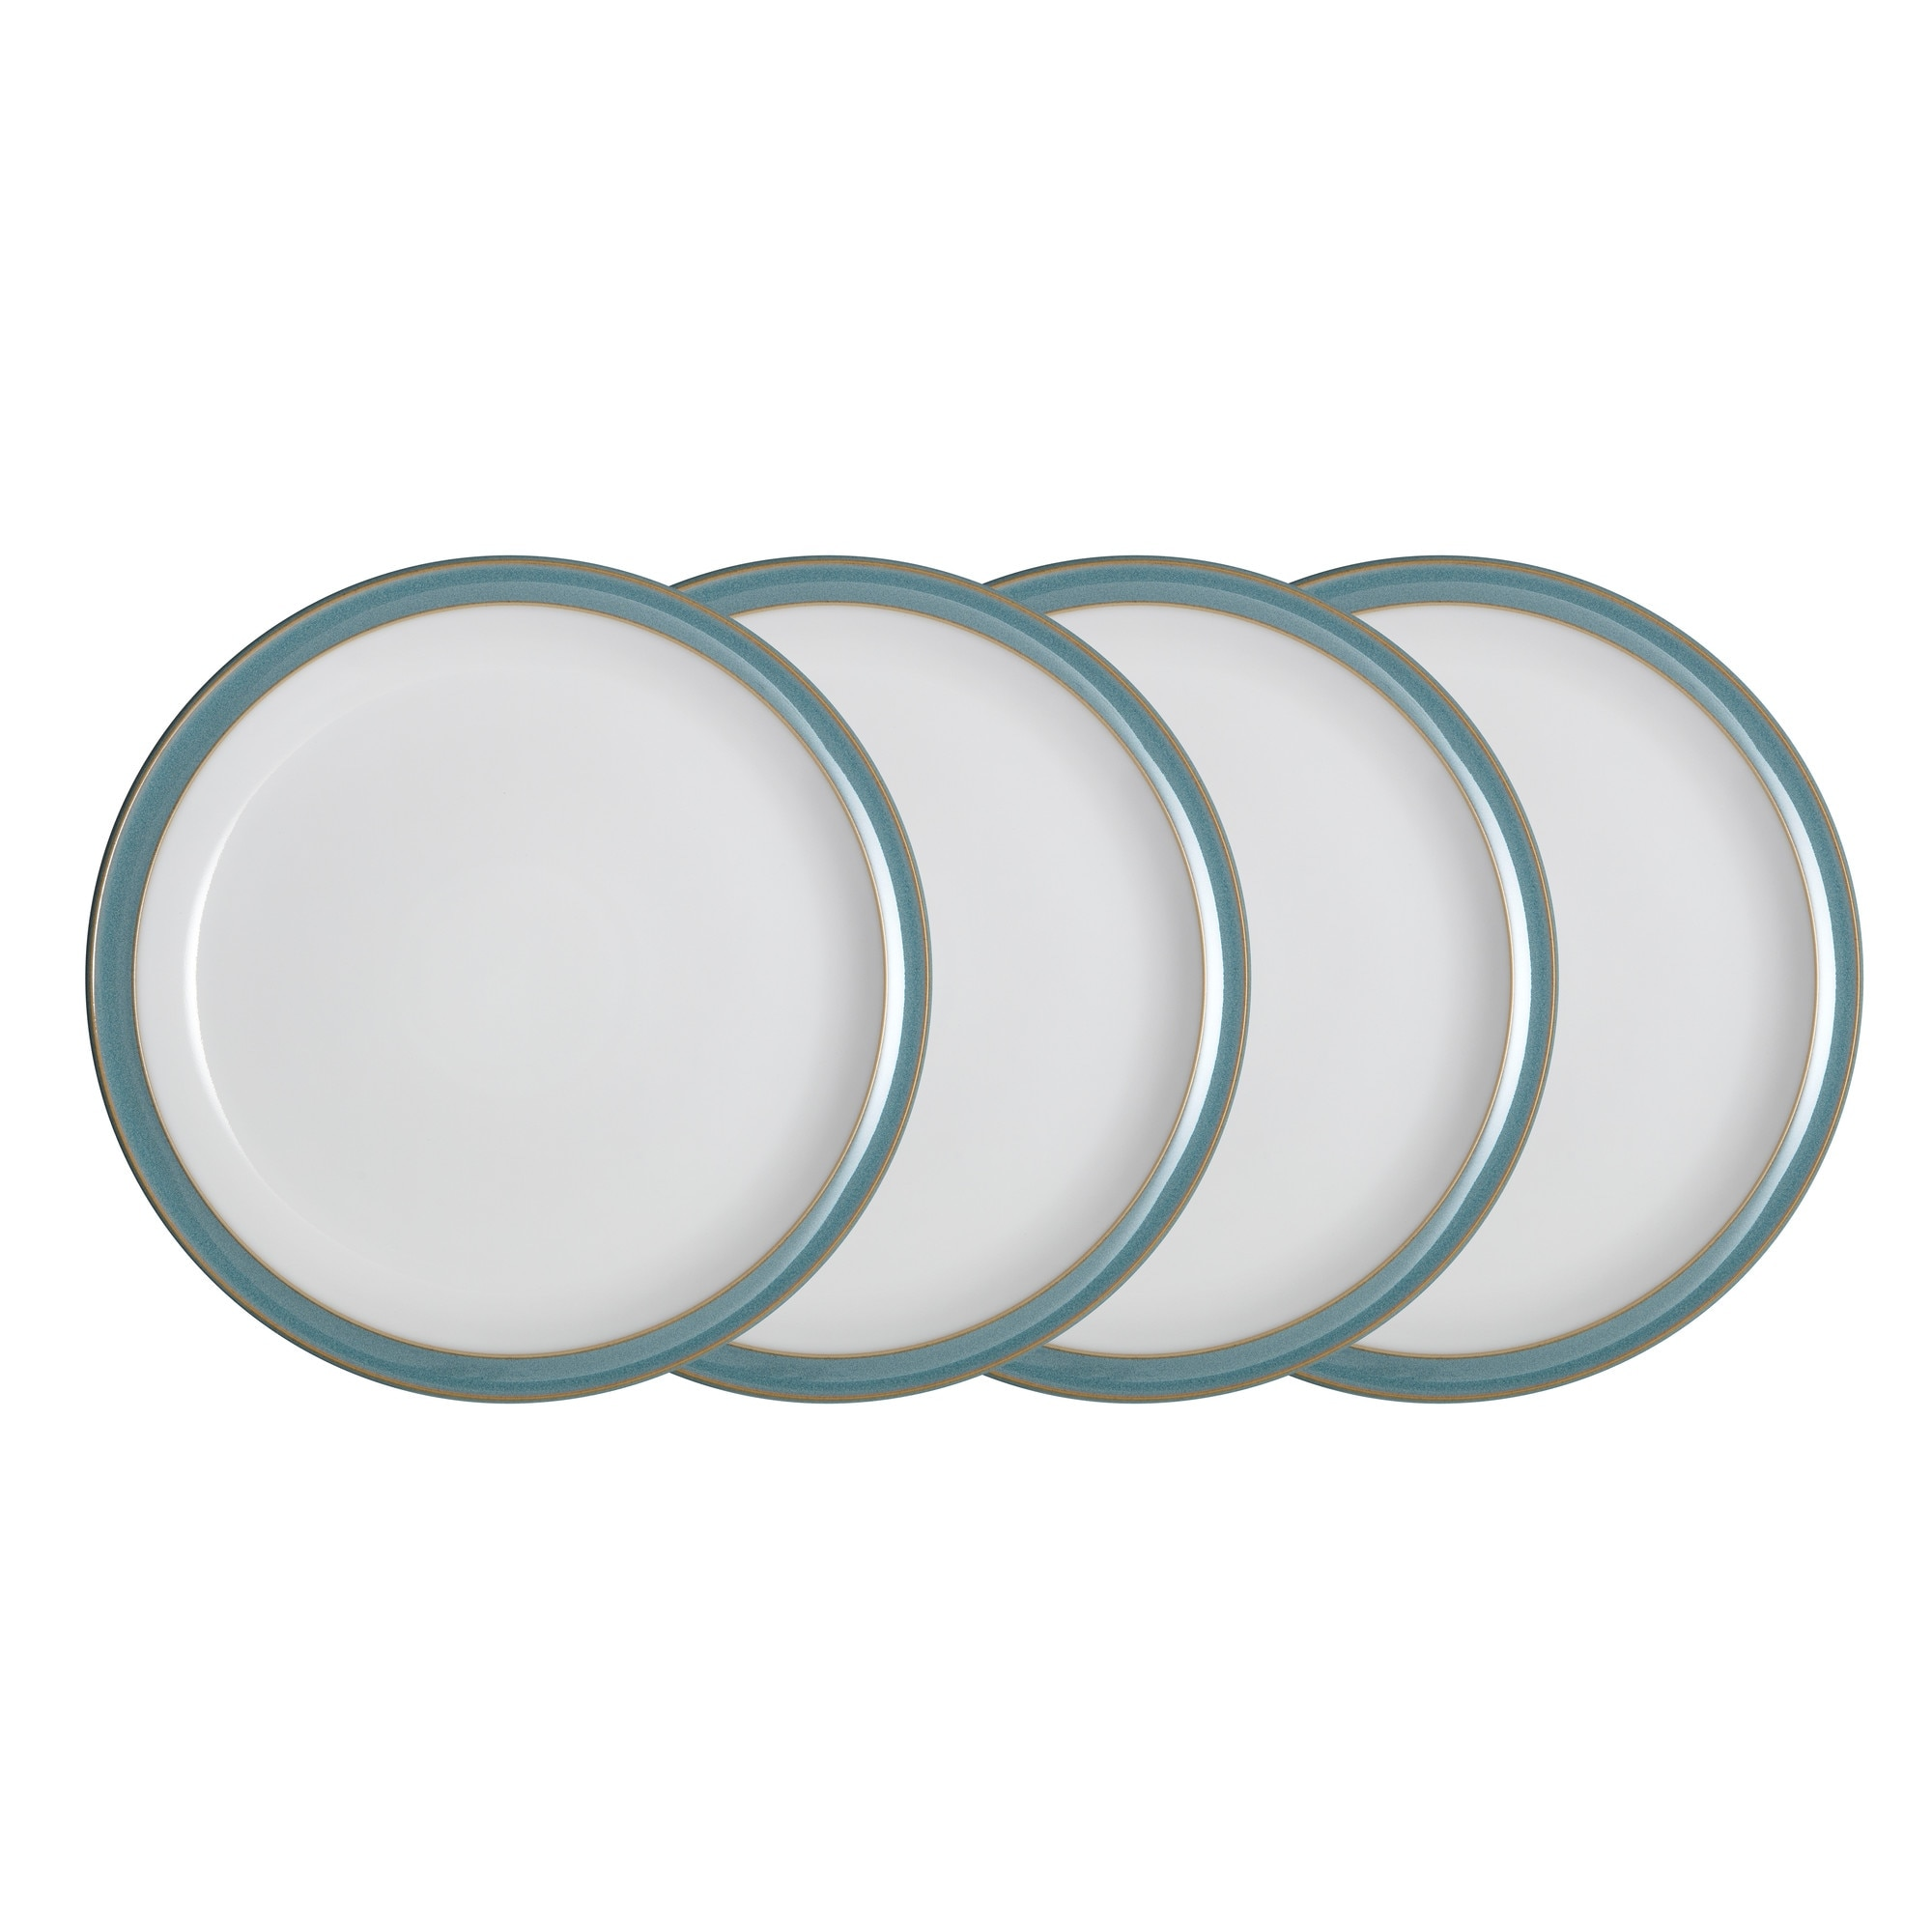 Compare prices for Azure 4 Piece Dinner Plate Set